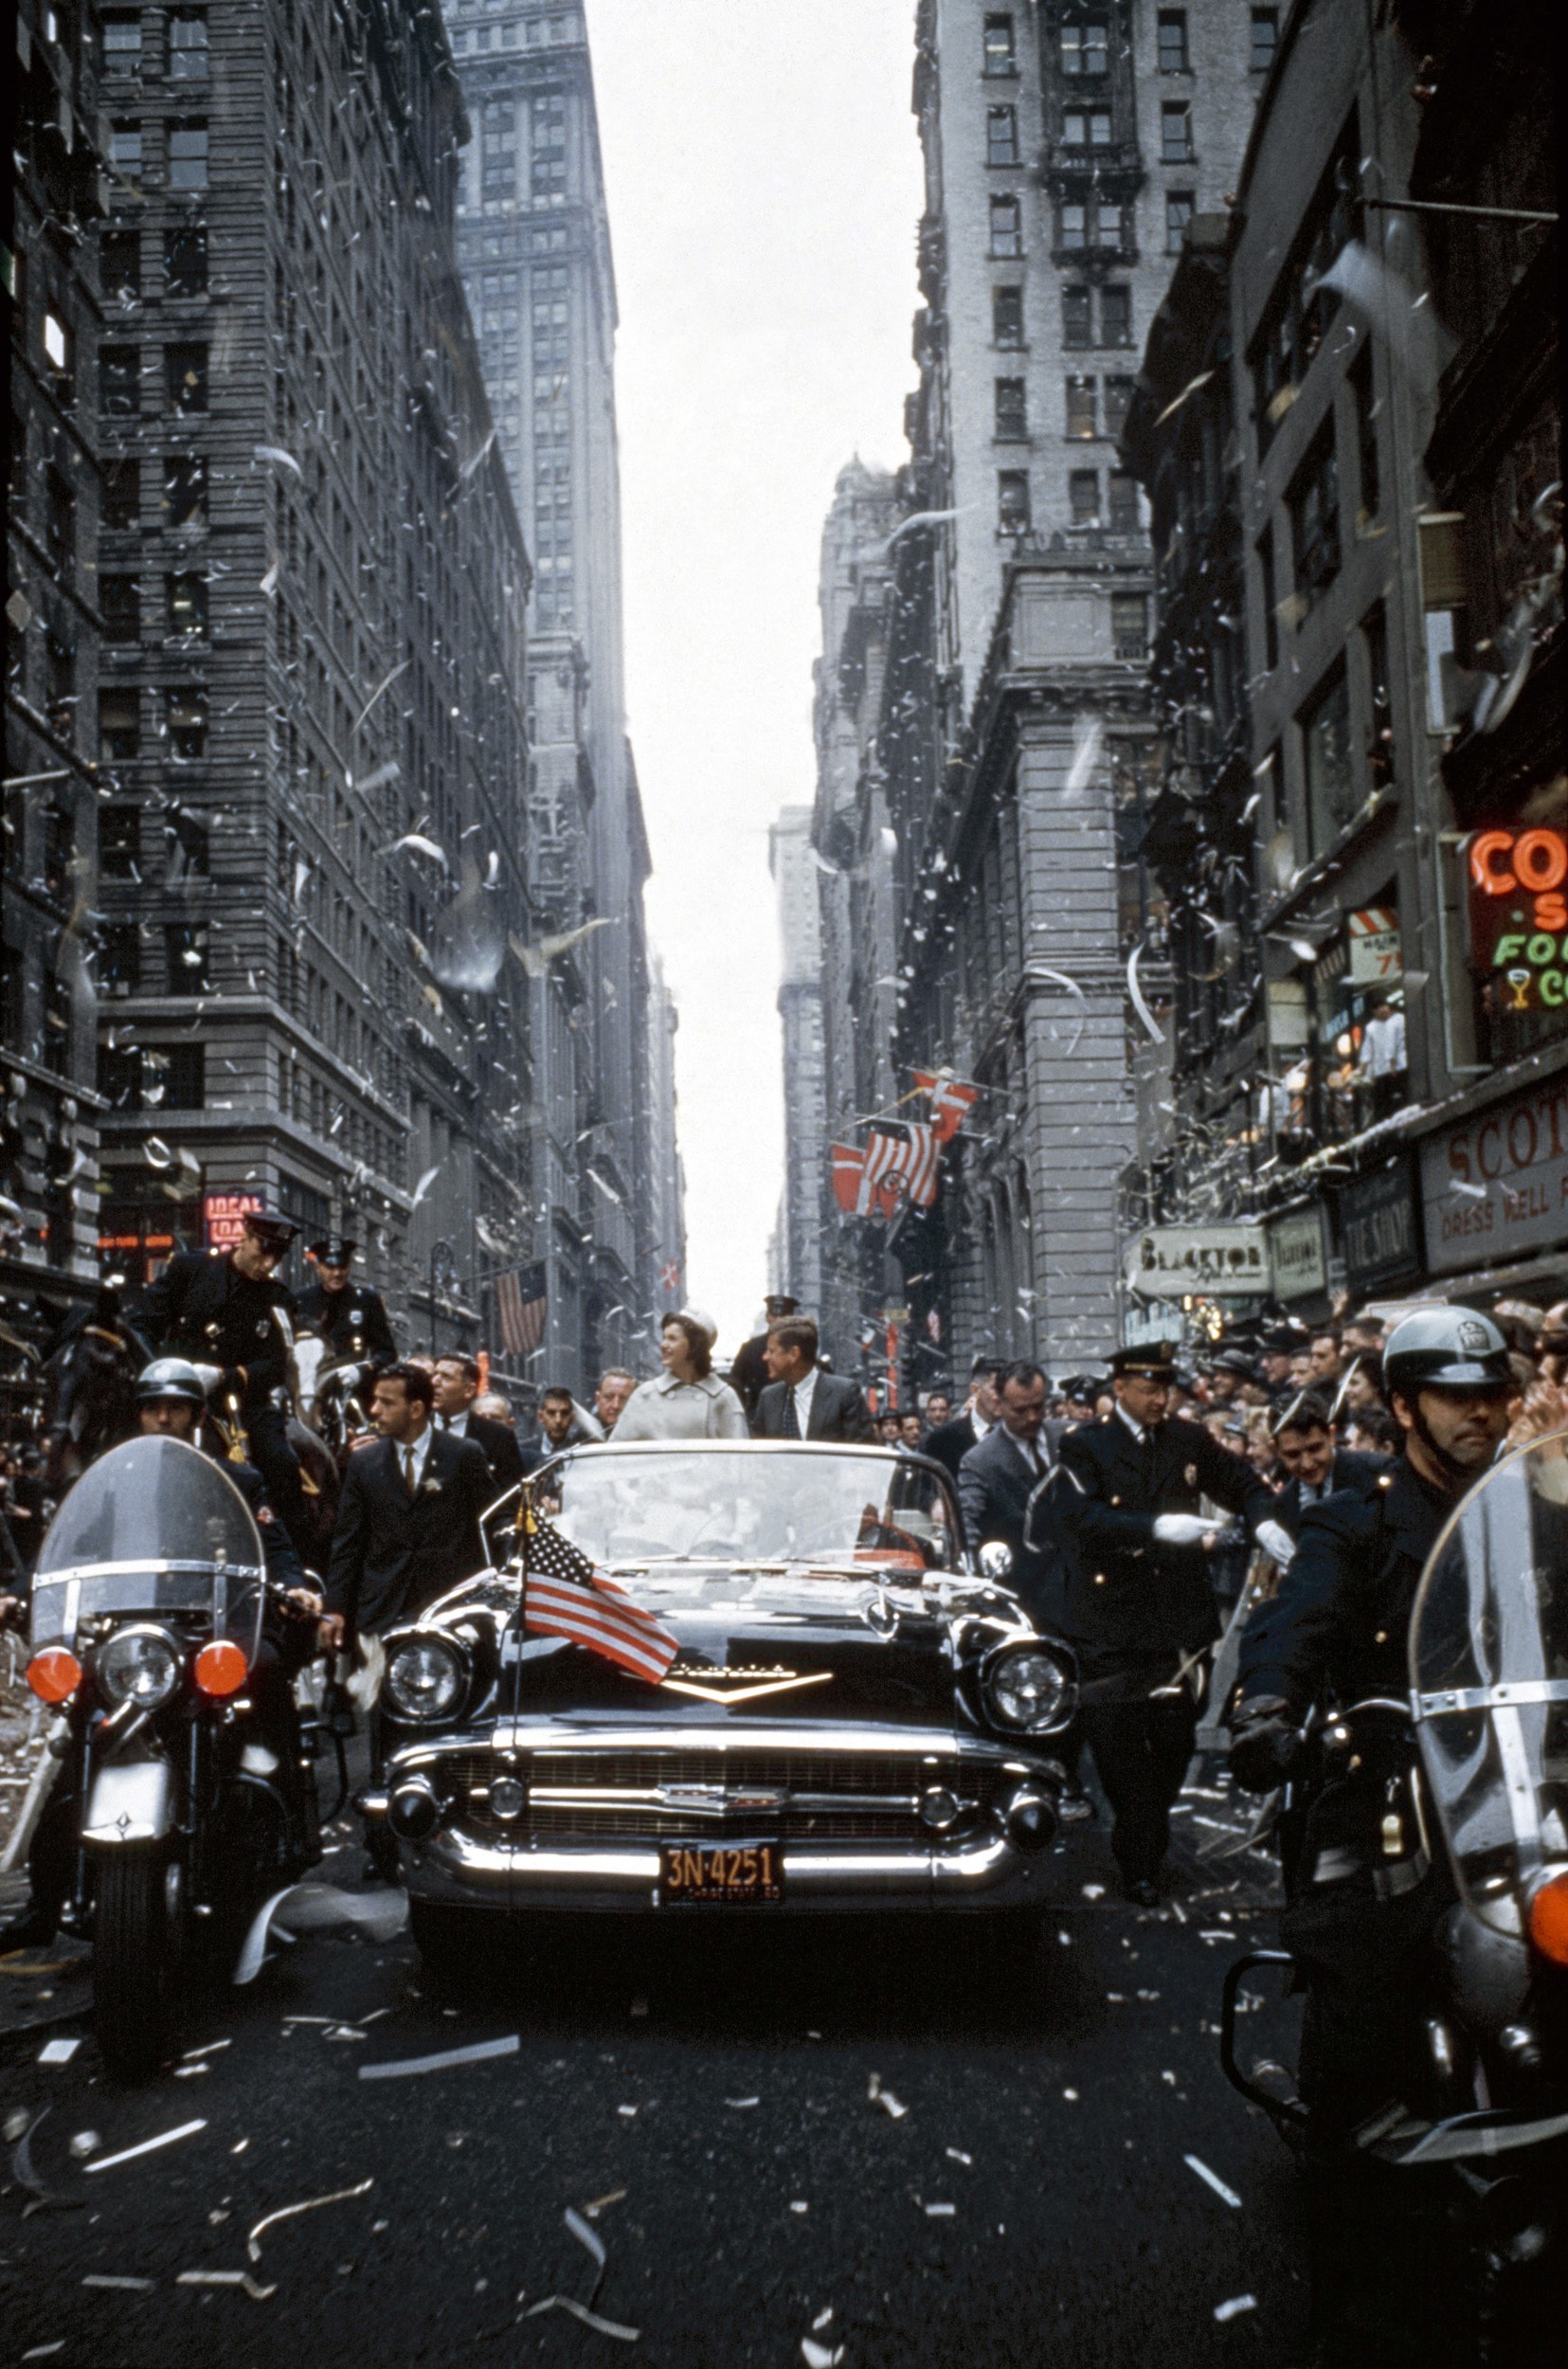 USA. New York City. 1960. Senator John F. KENNEDY and Jacqueline KENNEDY campaign during a ticker tape parade in Manhattan. Photo by Cornell Capa © International Center of Photography.